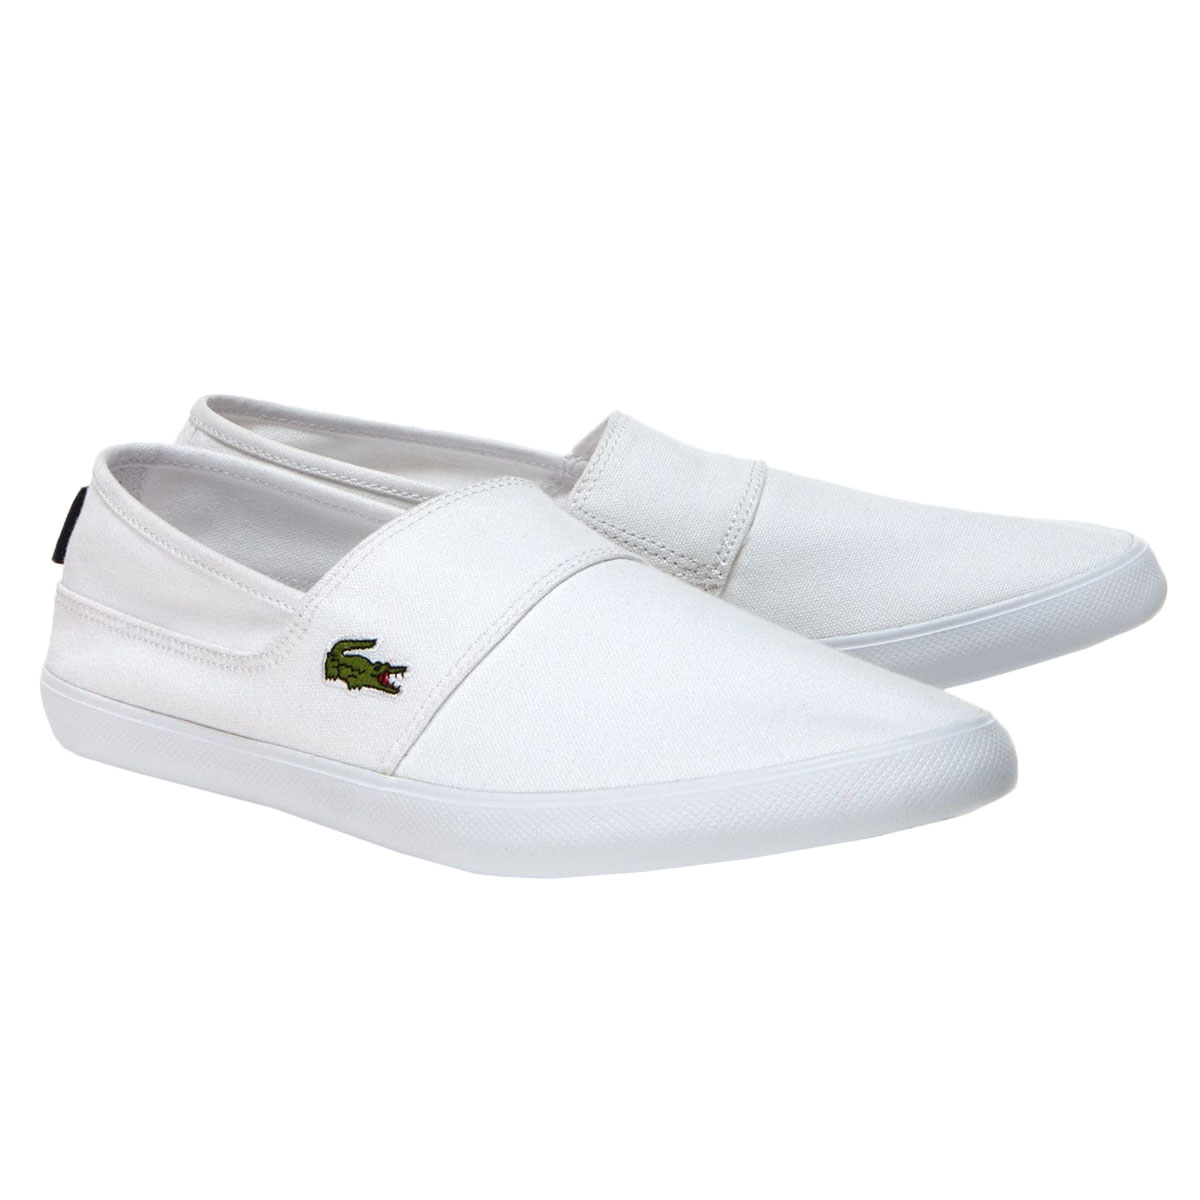 515b8a7aa908 Lacoste Men Casual Shoes Marice BL 2 Cam Slip on Fashion SNEAKERS White 10  for sale online